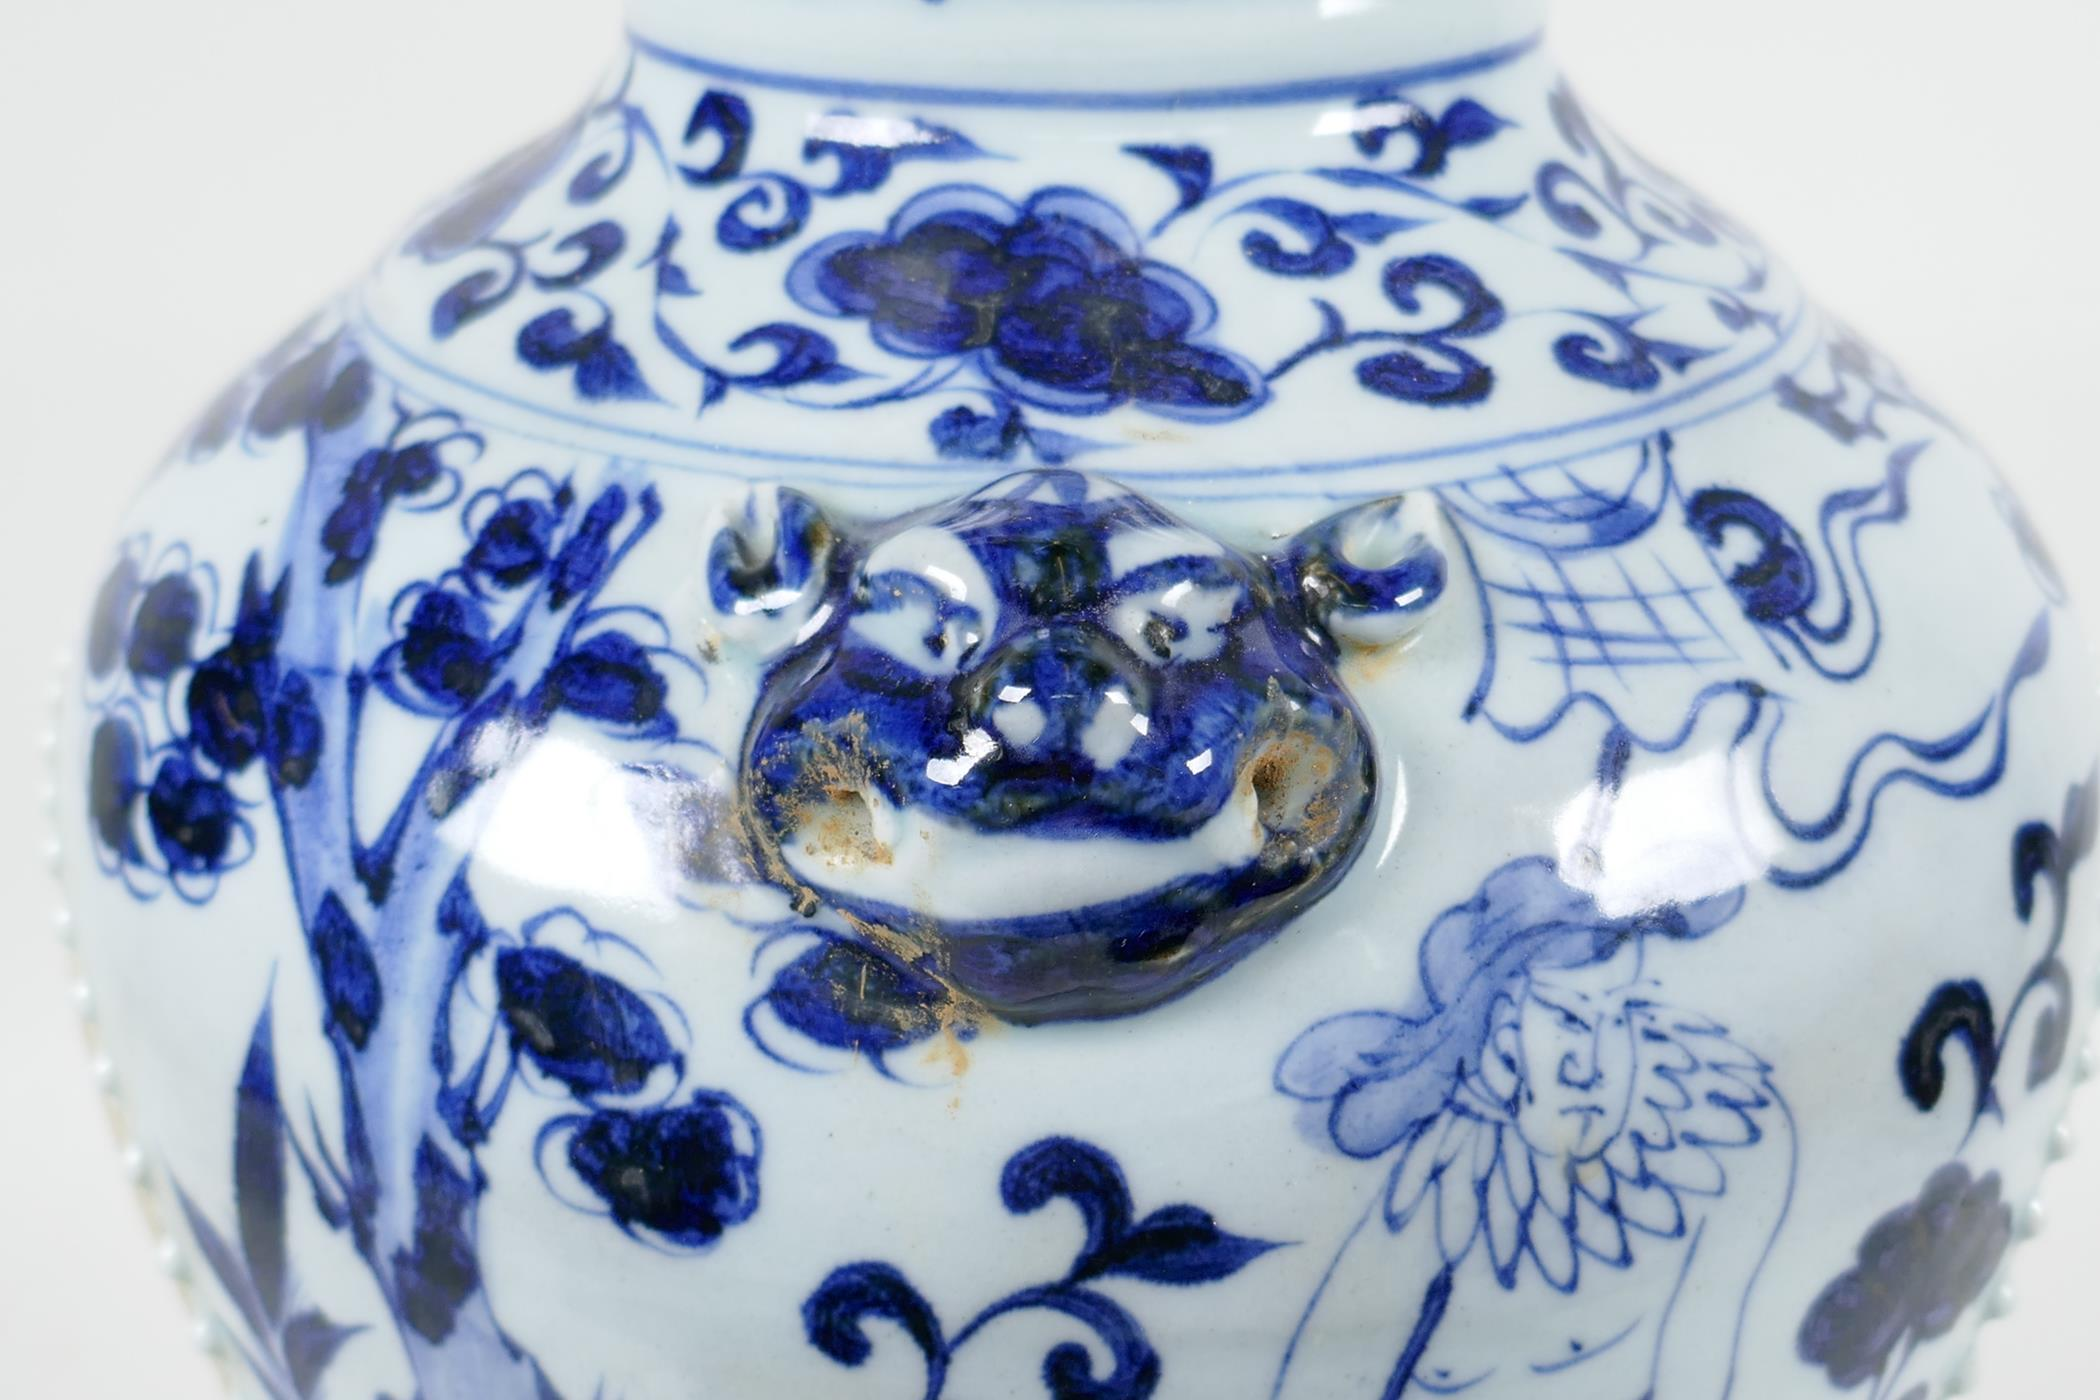 A Chinese blue and white porcelain vase with two lion mask handles, chased decorative panels - Image 7 of 8